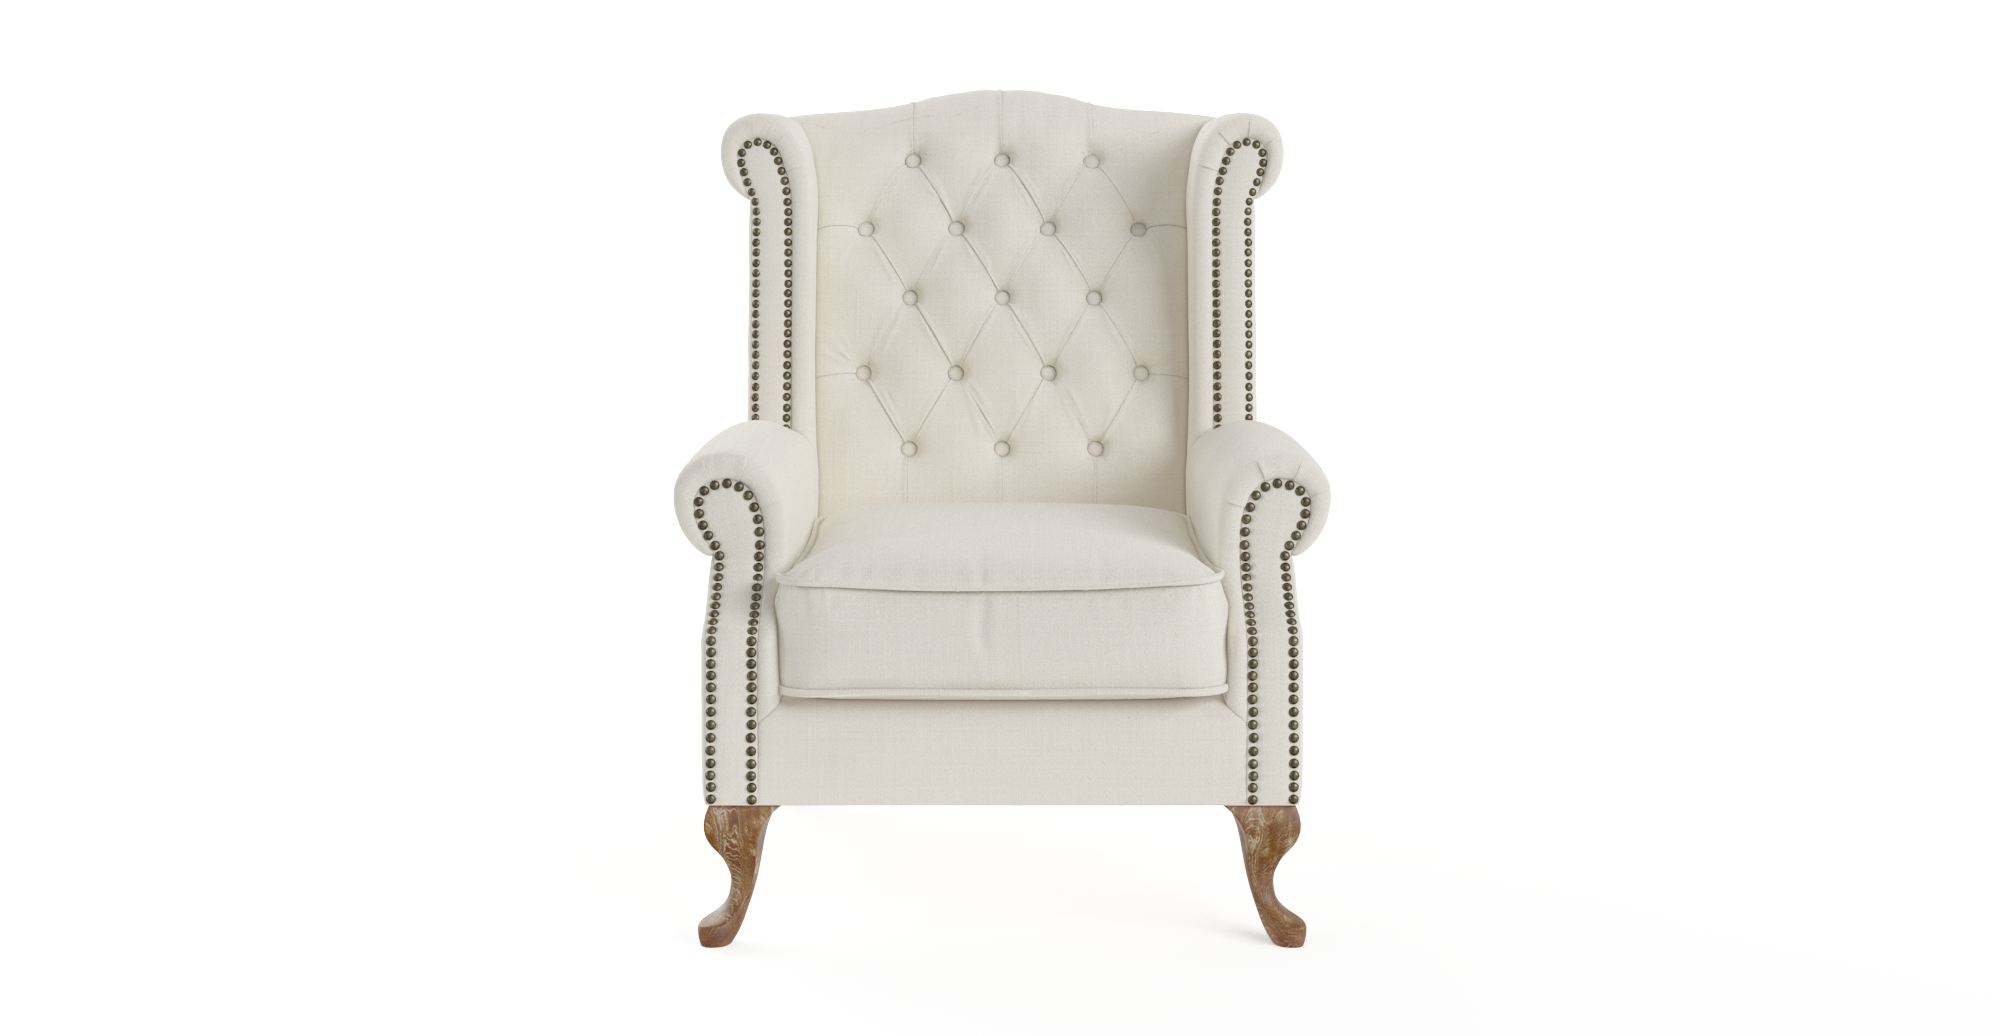 Buy Nottage Armchair Online in Australia | BROSA